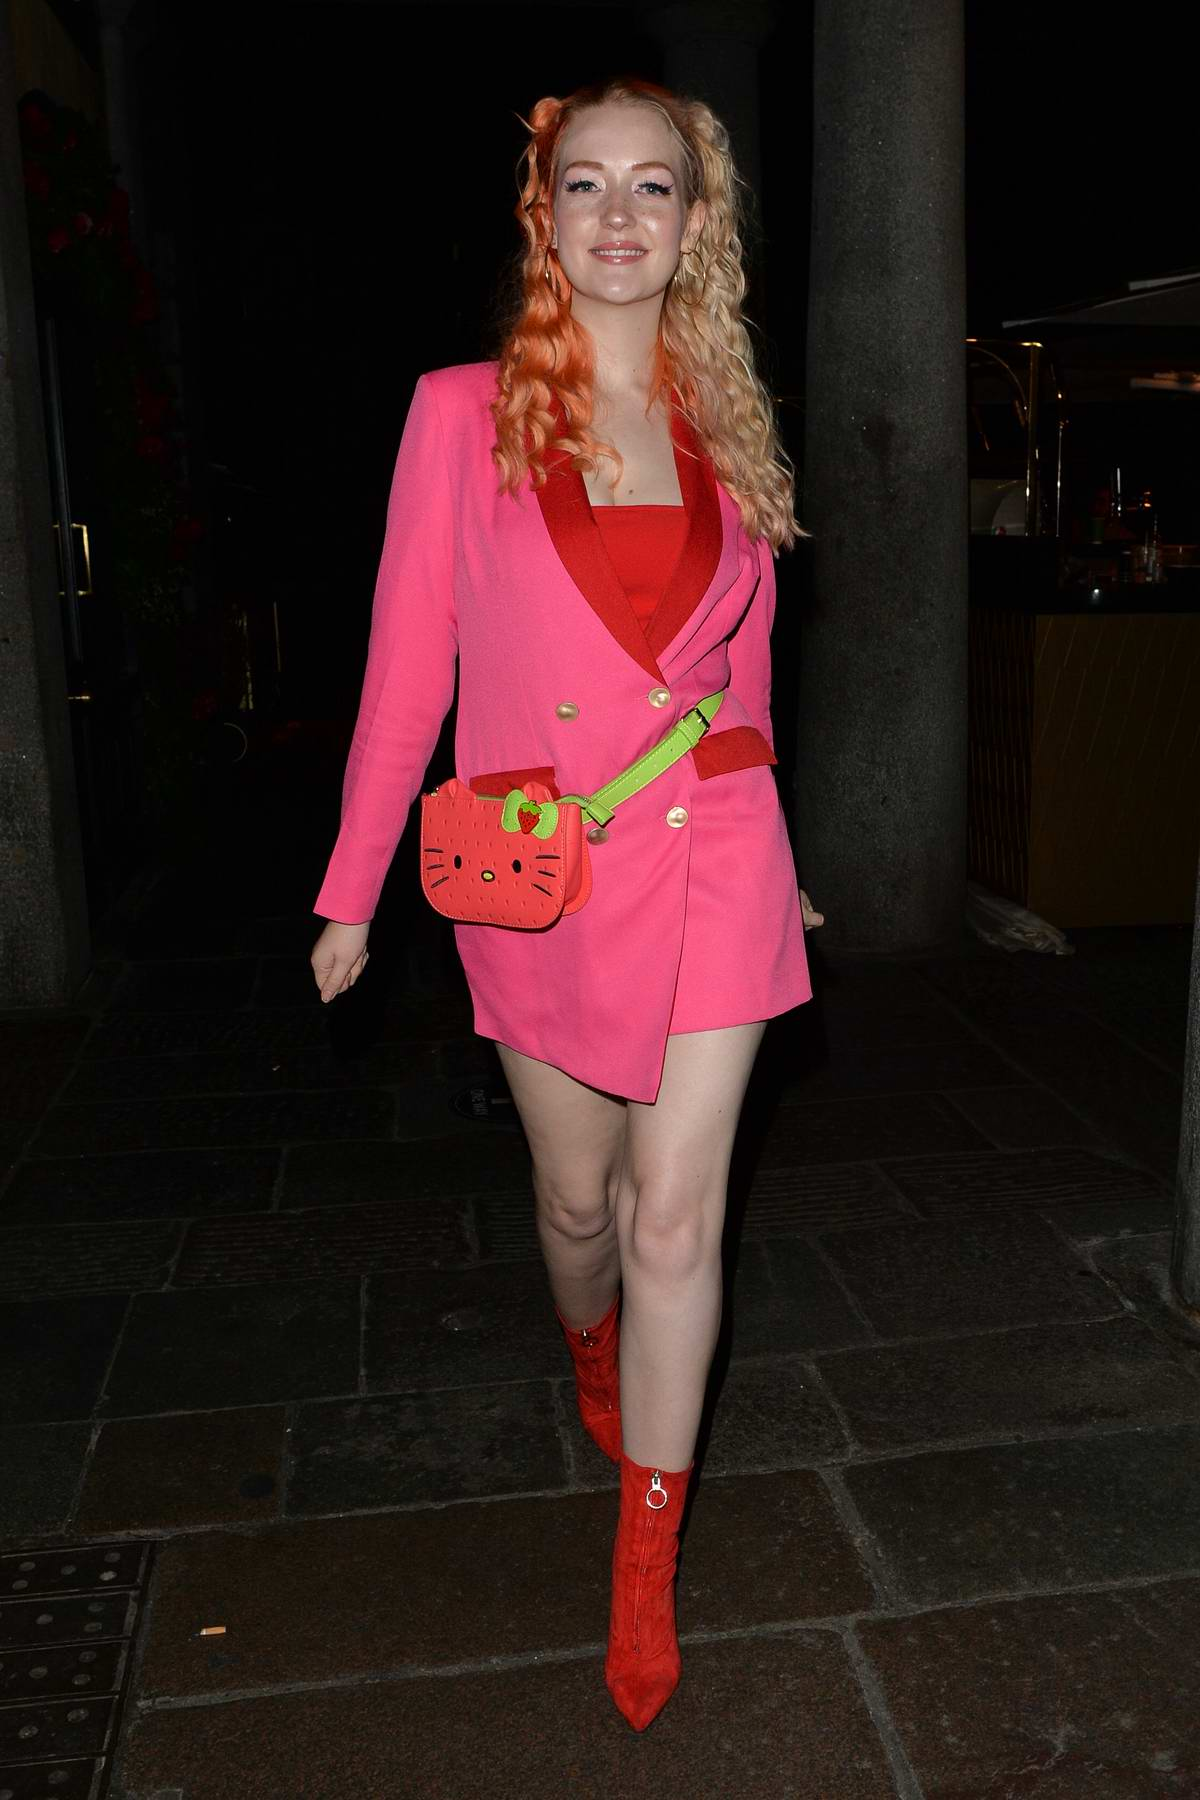 Victoria Clay is pretty in pink while out for dinner in Mayfair, London, UK